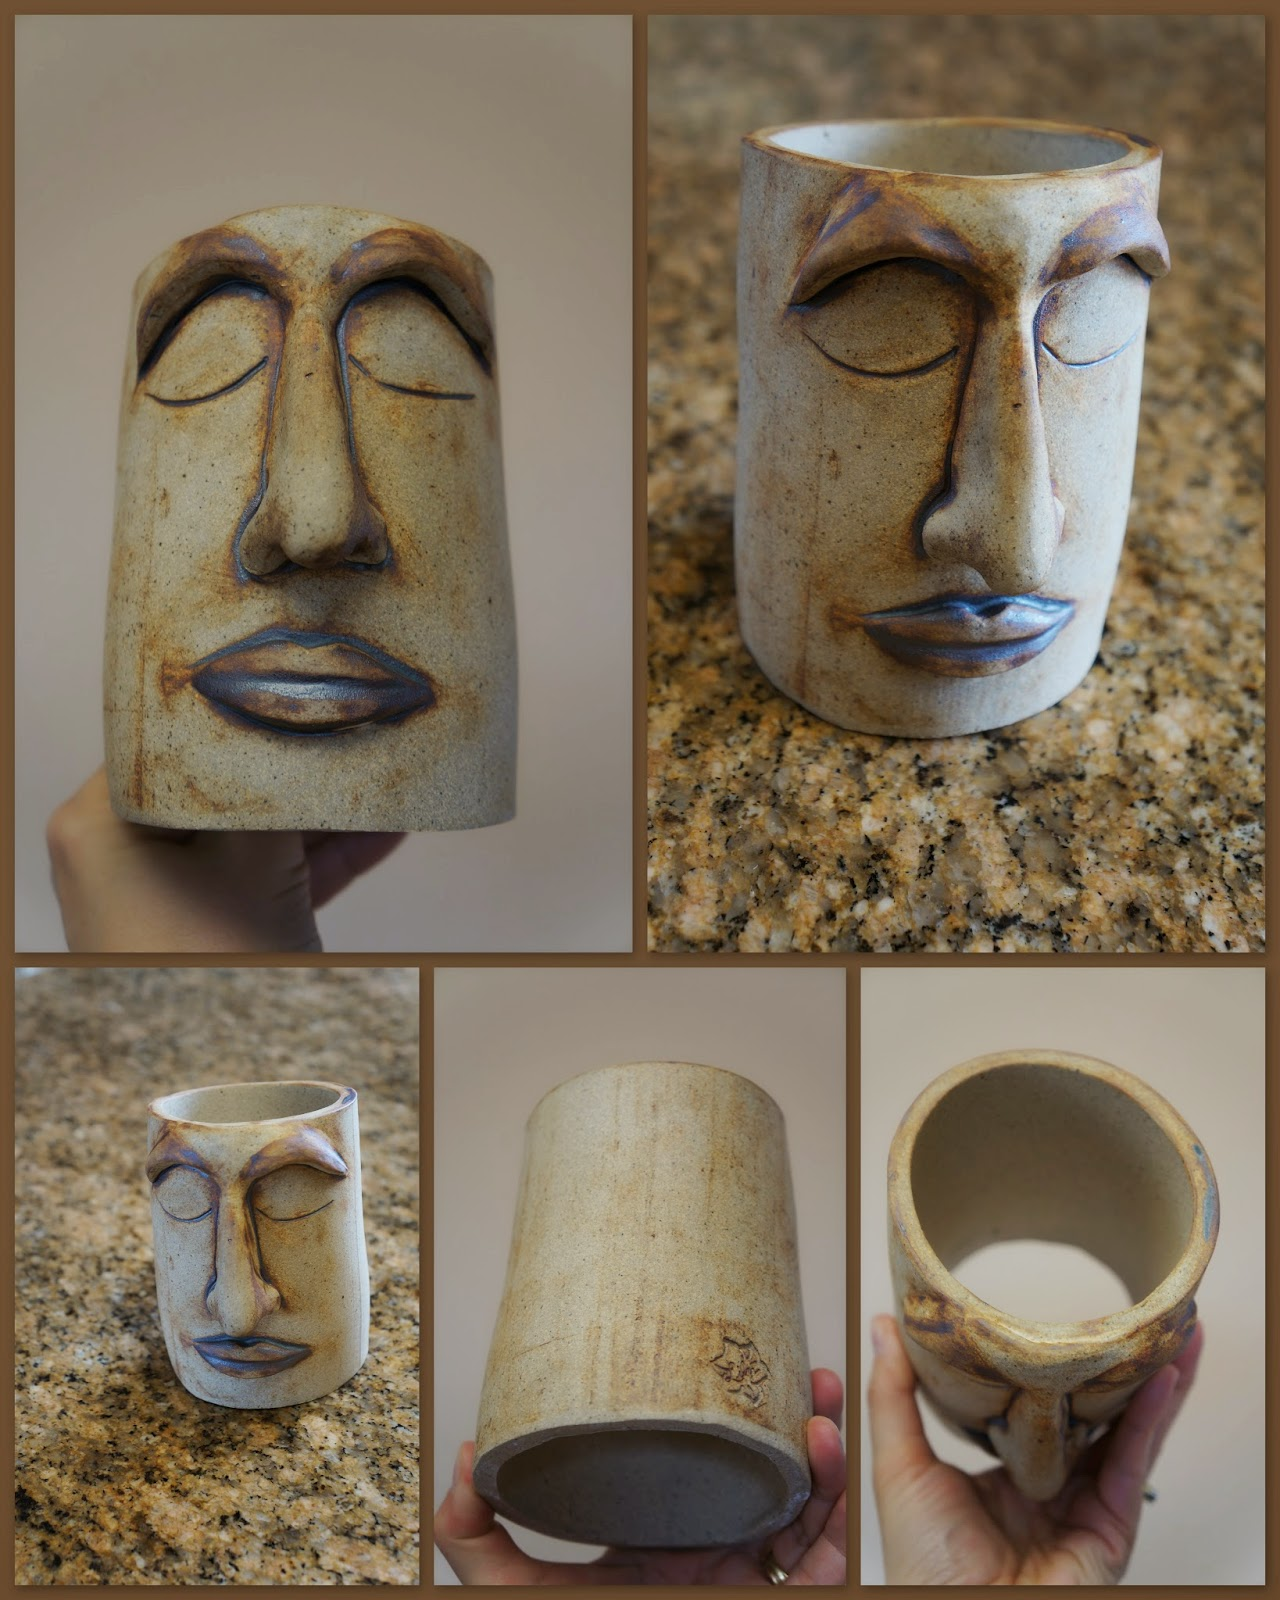 Handmade stoneware clay face for a garden planter